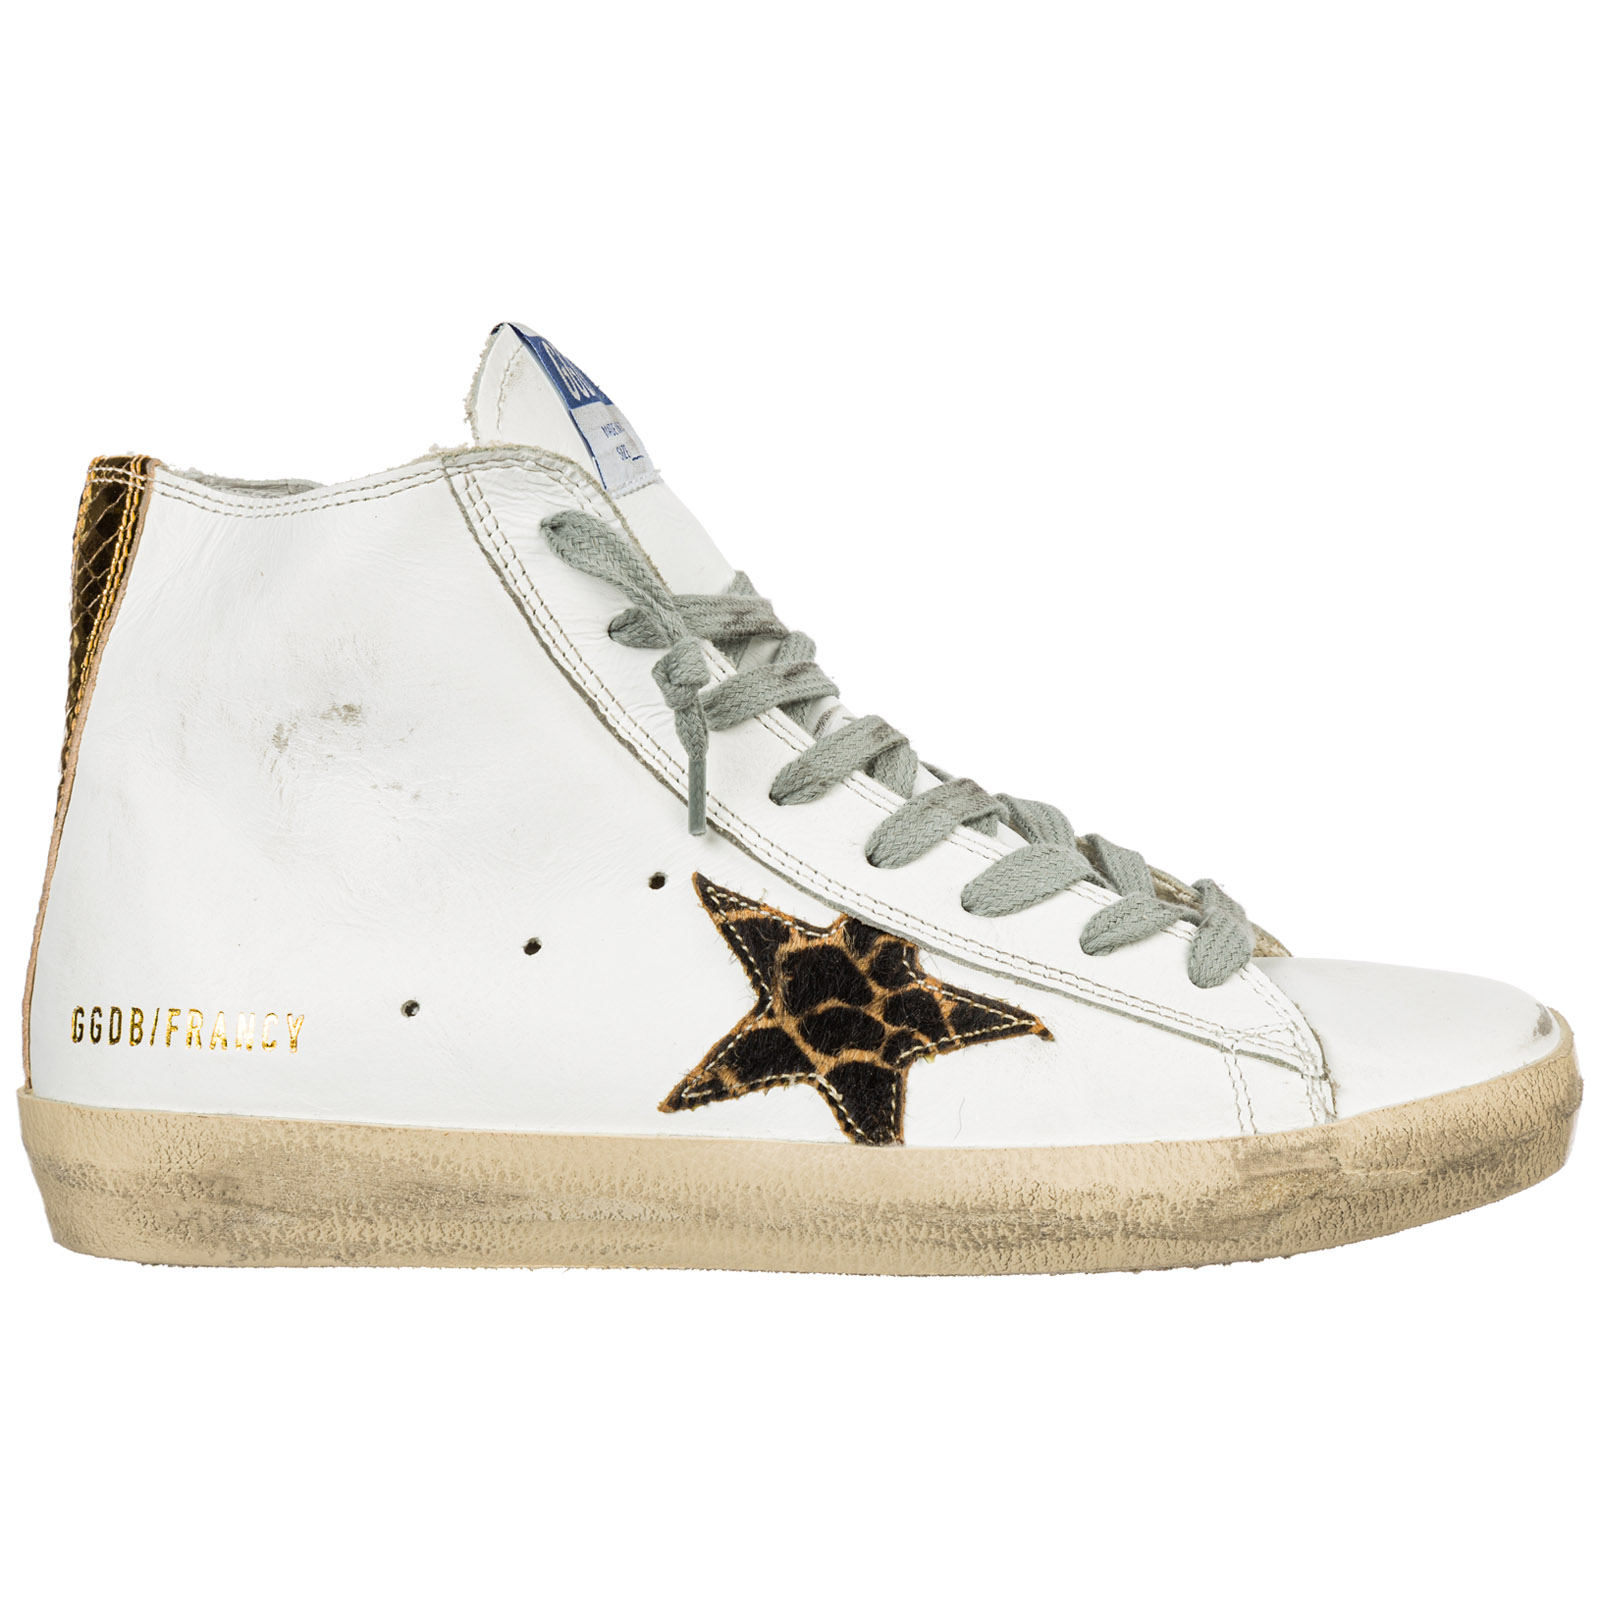 722a9849363 Golden Goose Women's Shoes High Top Leather Trainers Sneakers Francy In  White